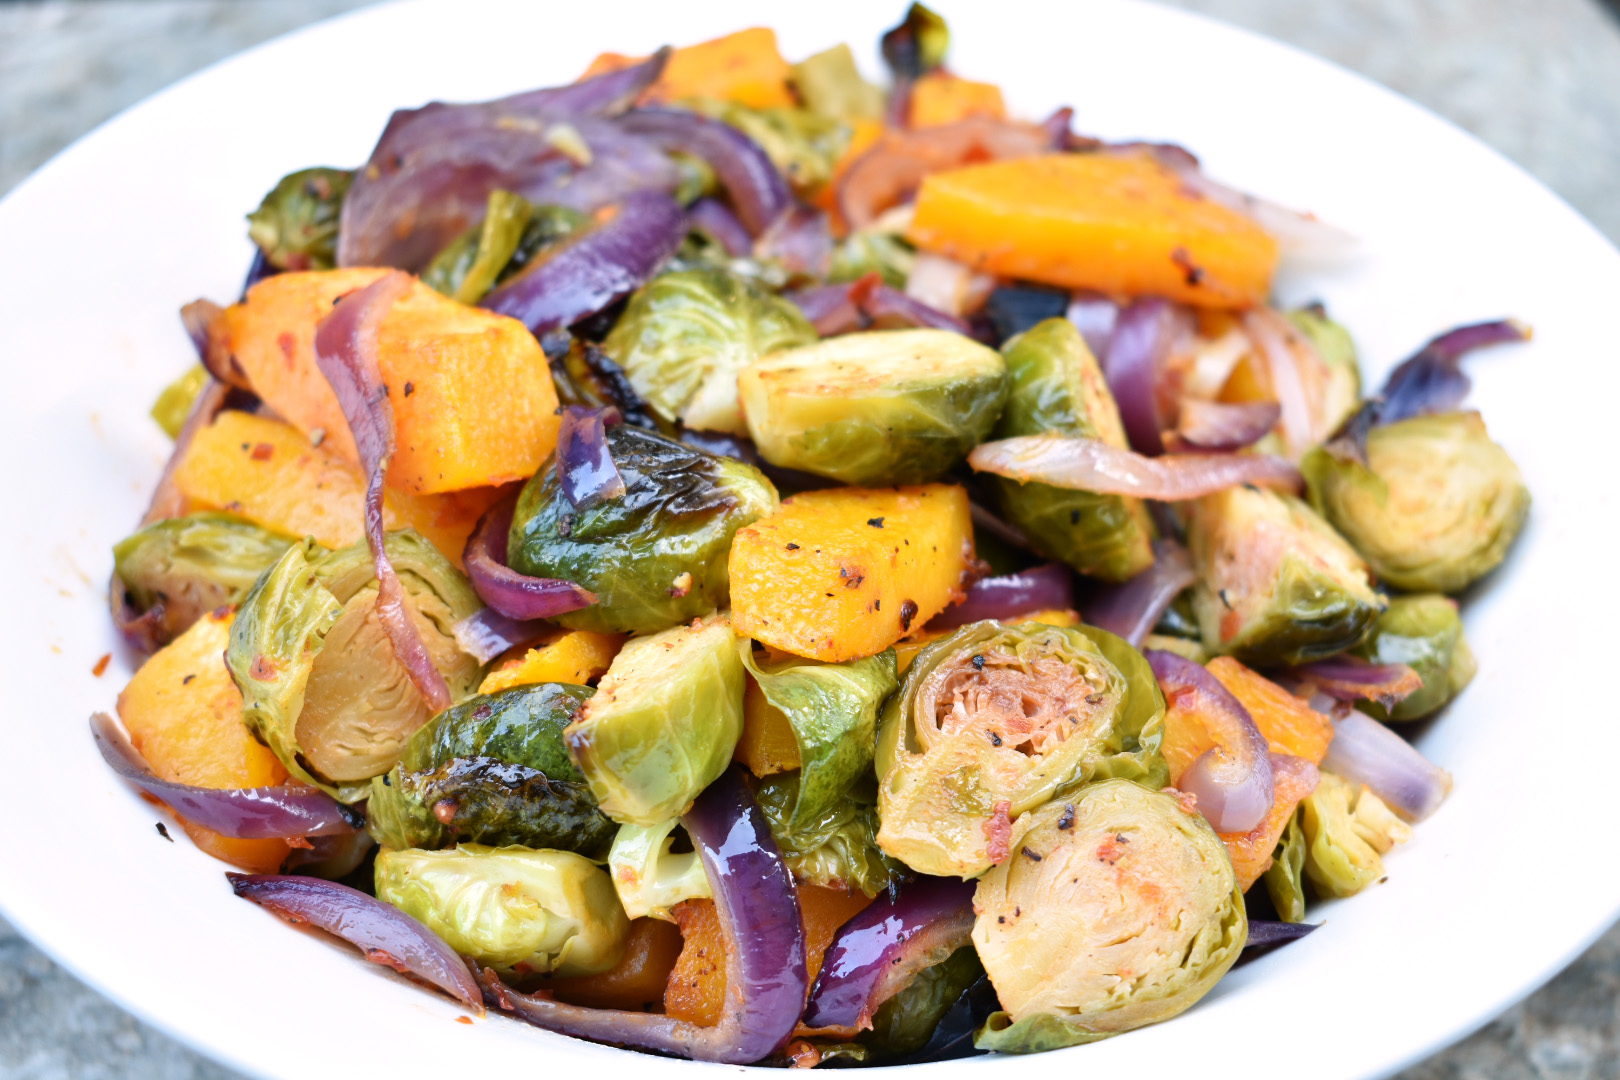 Chili and Garlic Roasted Vegetables